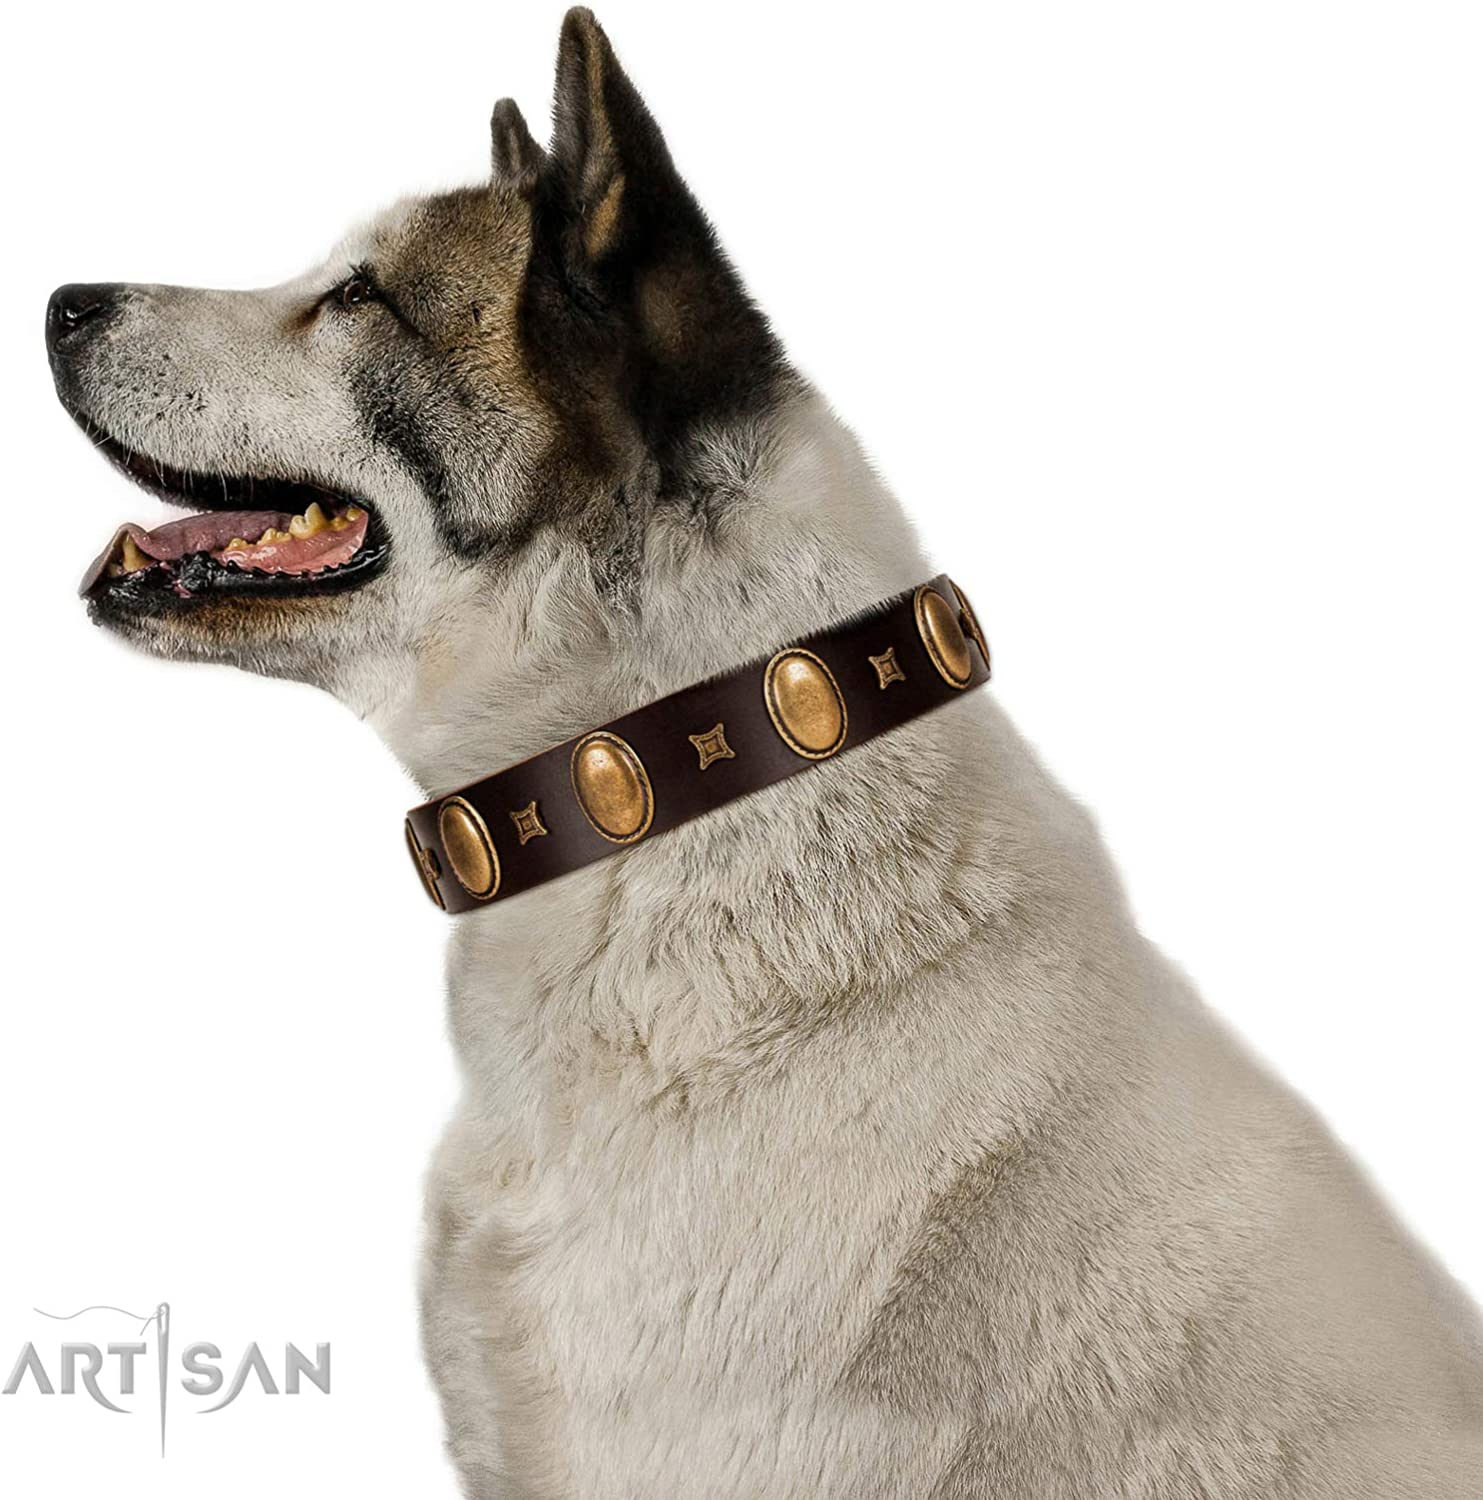 FDT Artisan 18 inch Brown Leather Dog Collar with with Ovals and Studs  Crystal Mirror  1 1 2 inch (40 mm) Wide  Gift Box Included